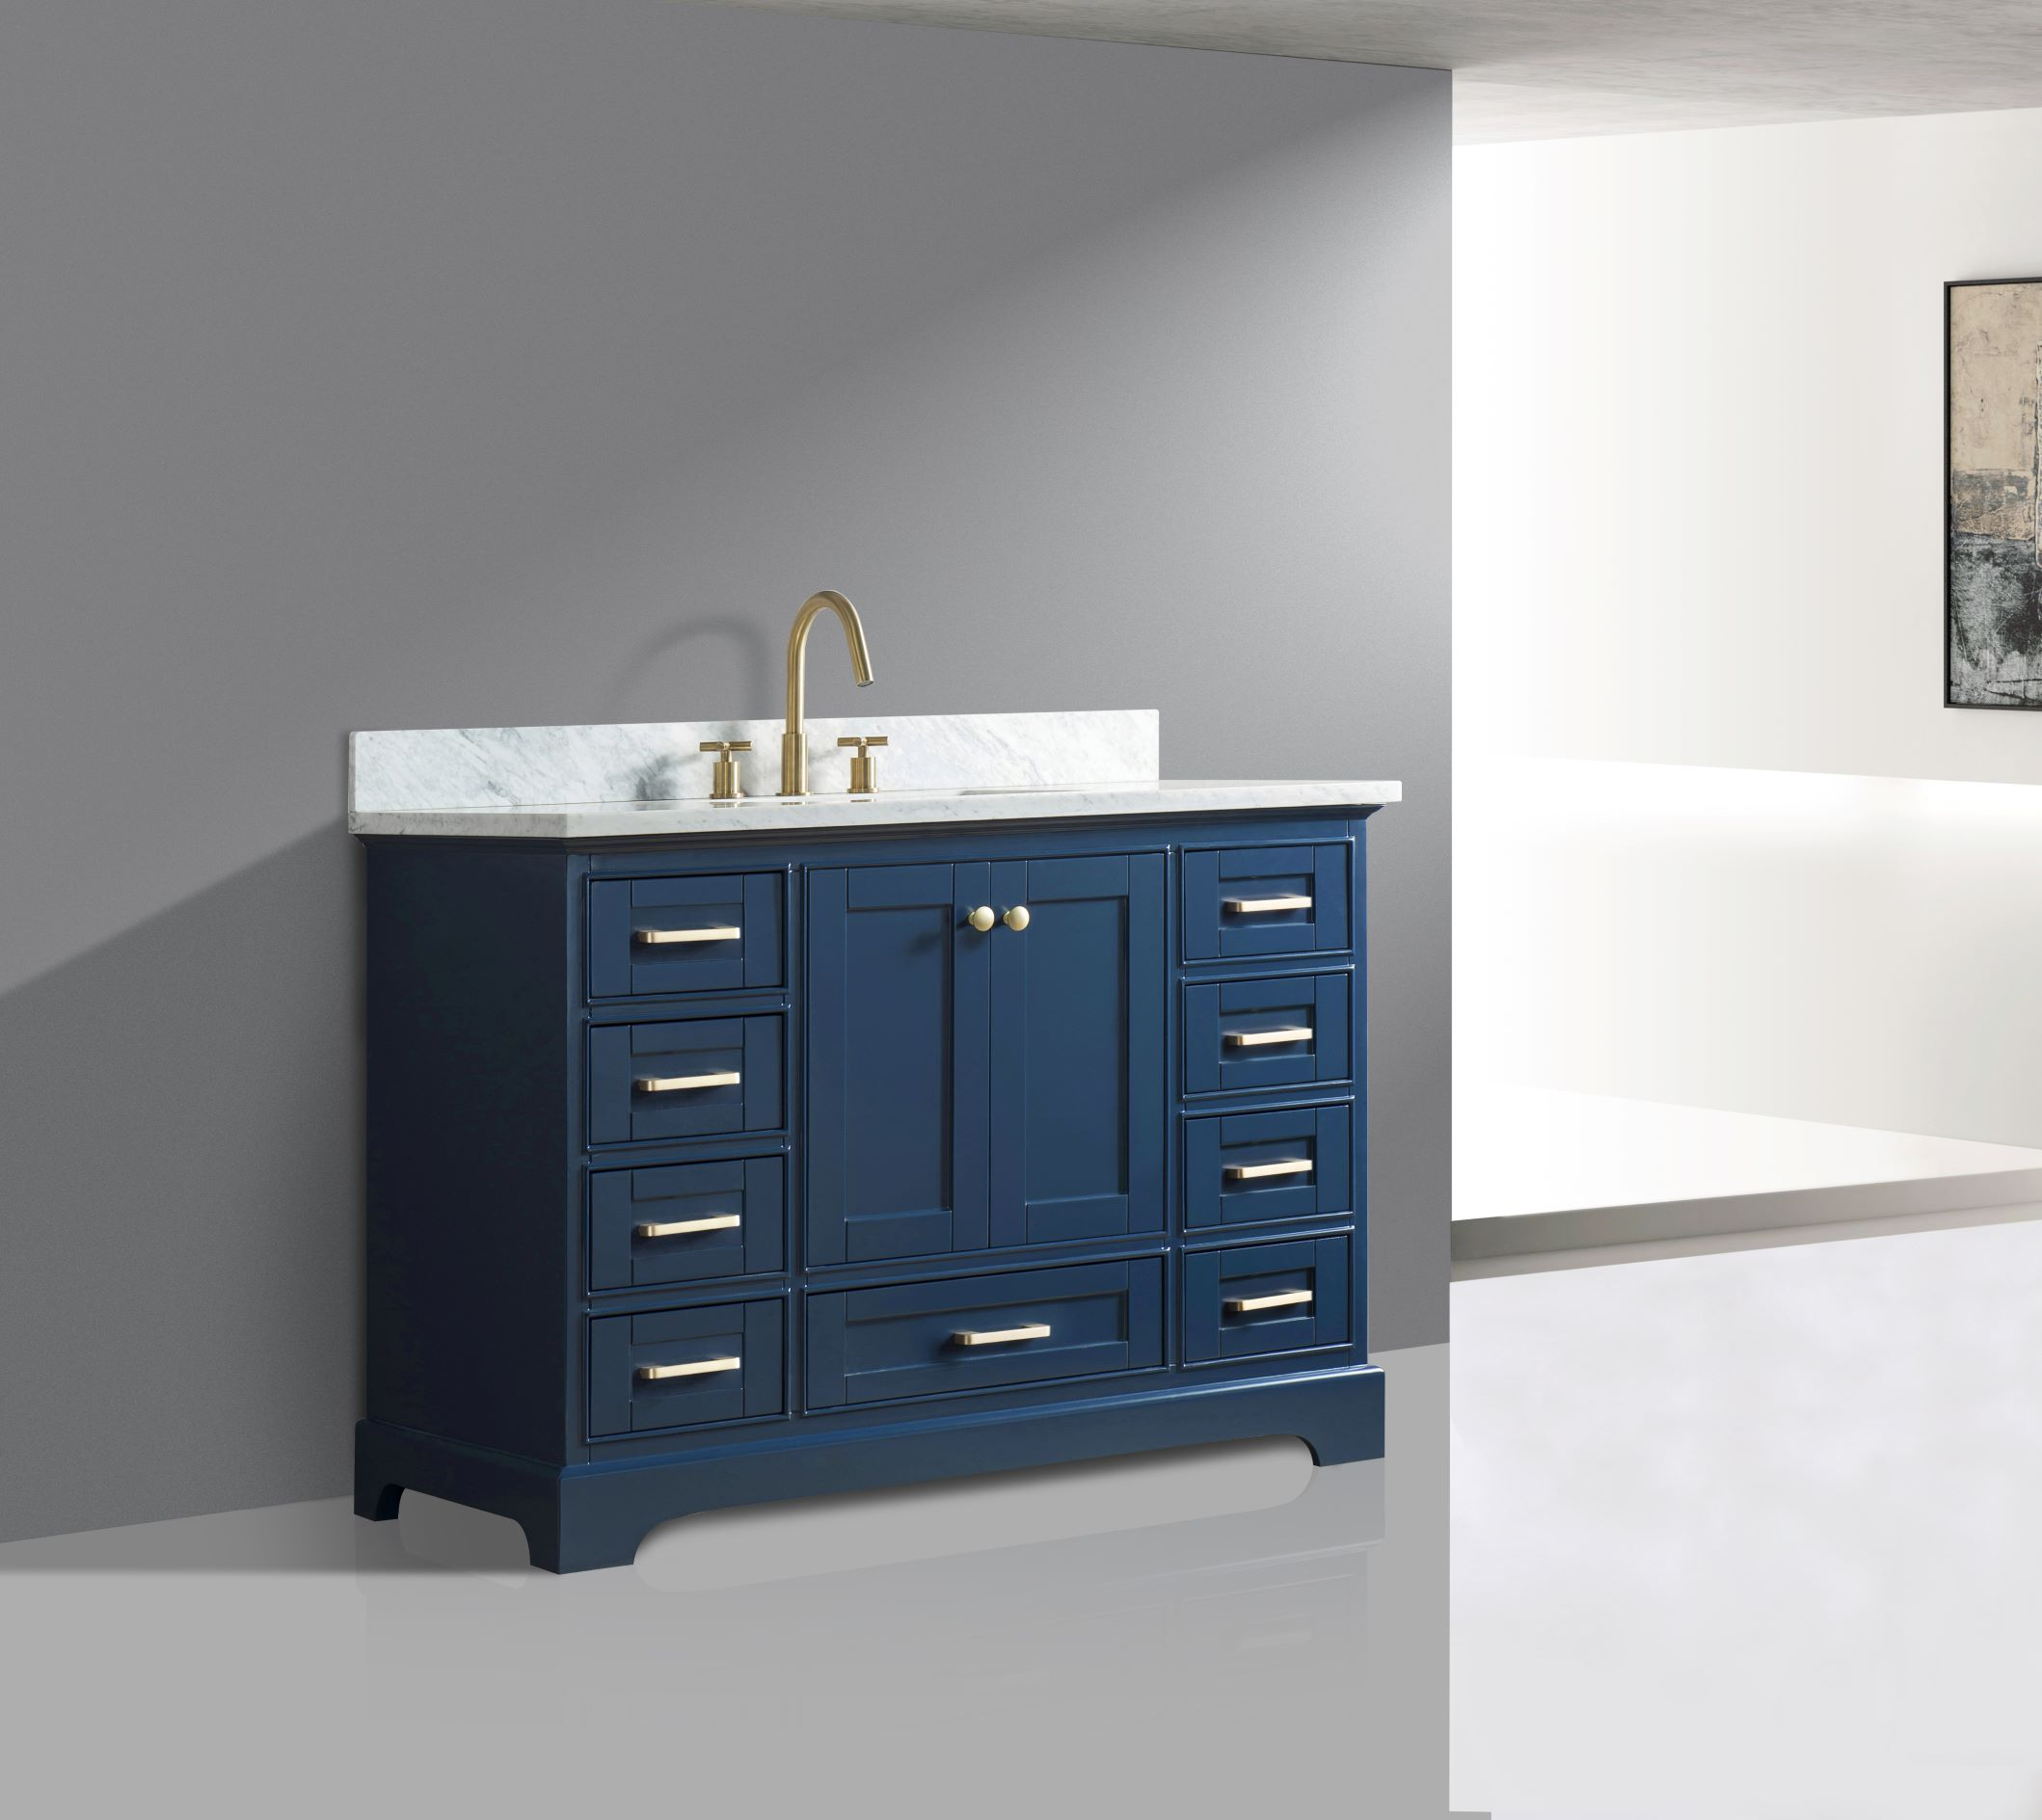 48 Quot Single Sink Bathroom Vanity In Blue Finish With Carrara White Marble Top